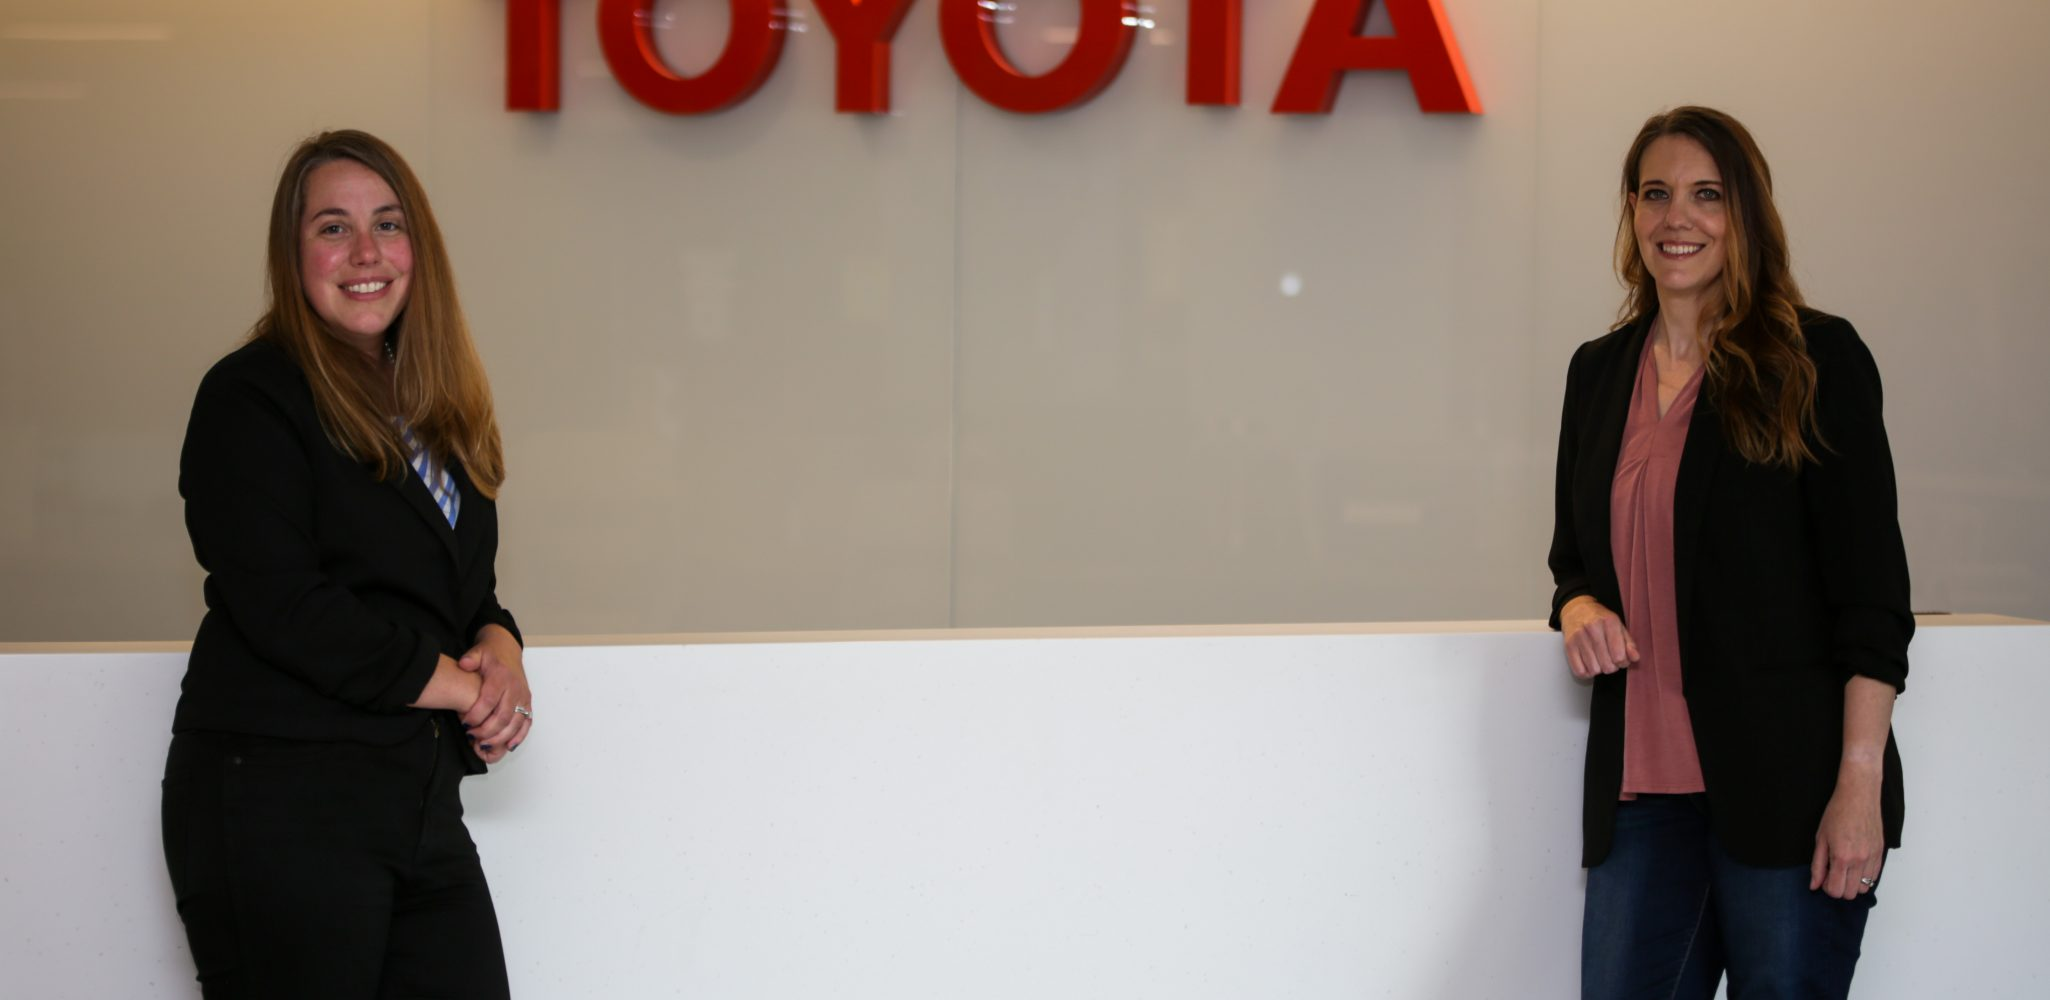 Mothers of Innovation: The Women Behind Toyota's Child Car Seat App